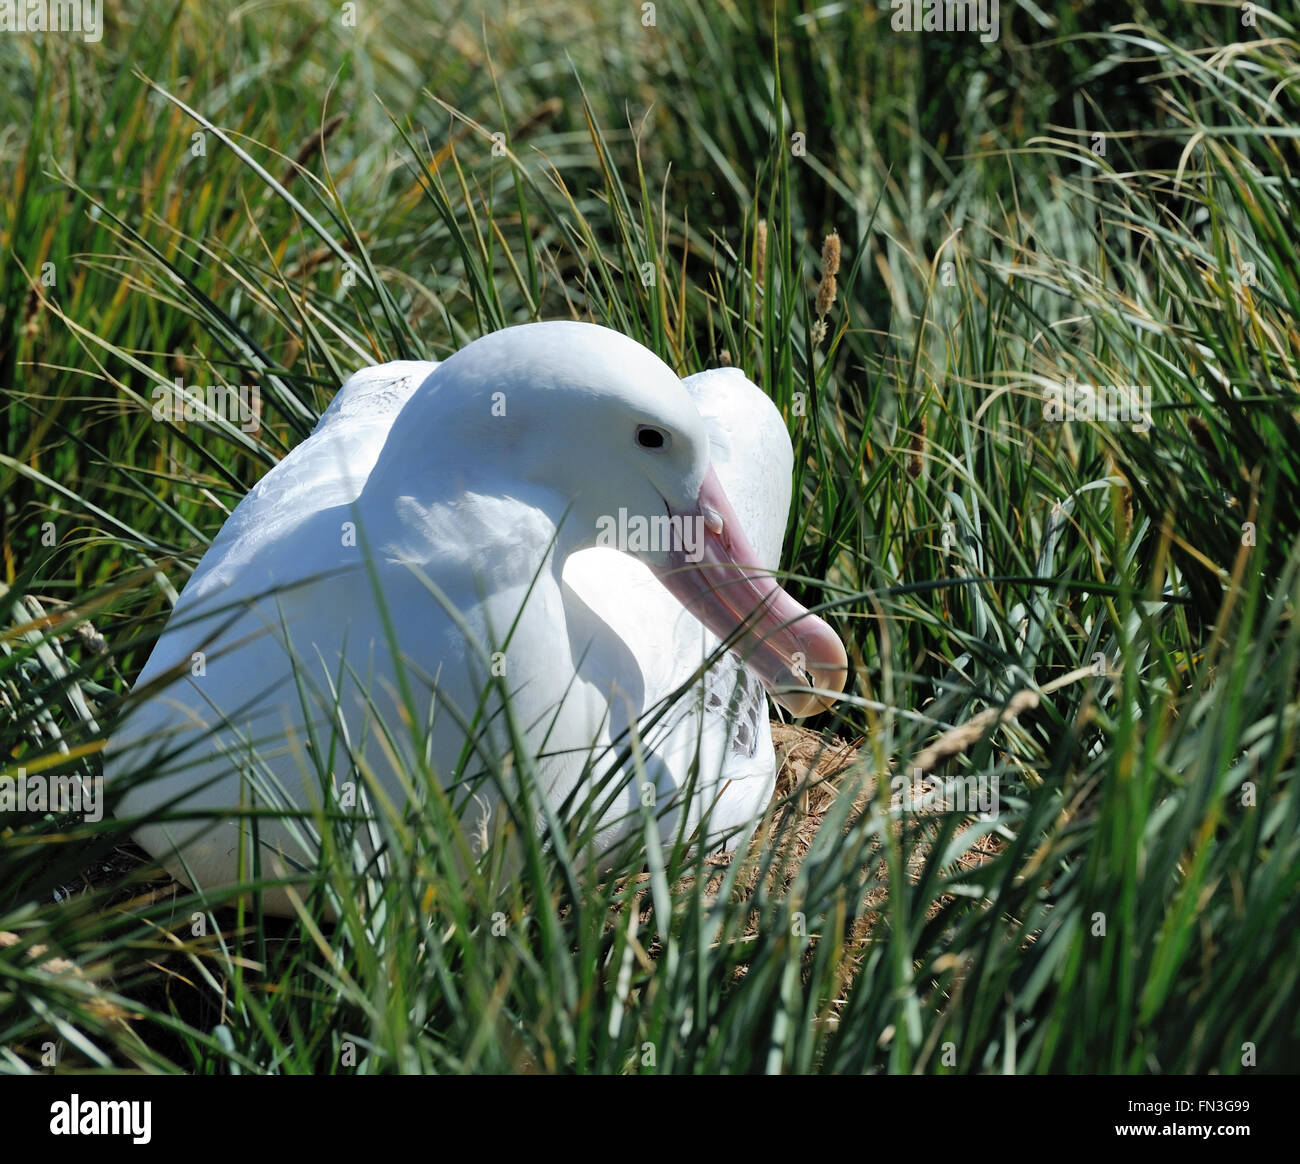 A Wandering Albatross (Diomedea exulans) on its nest. Prion Island, South Georgia. - Stock Image